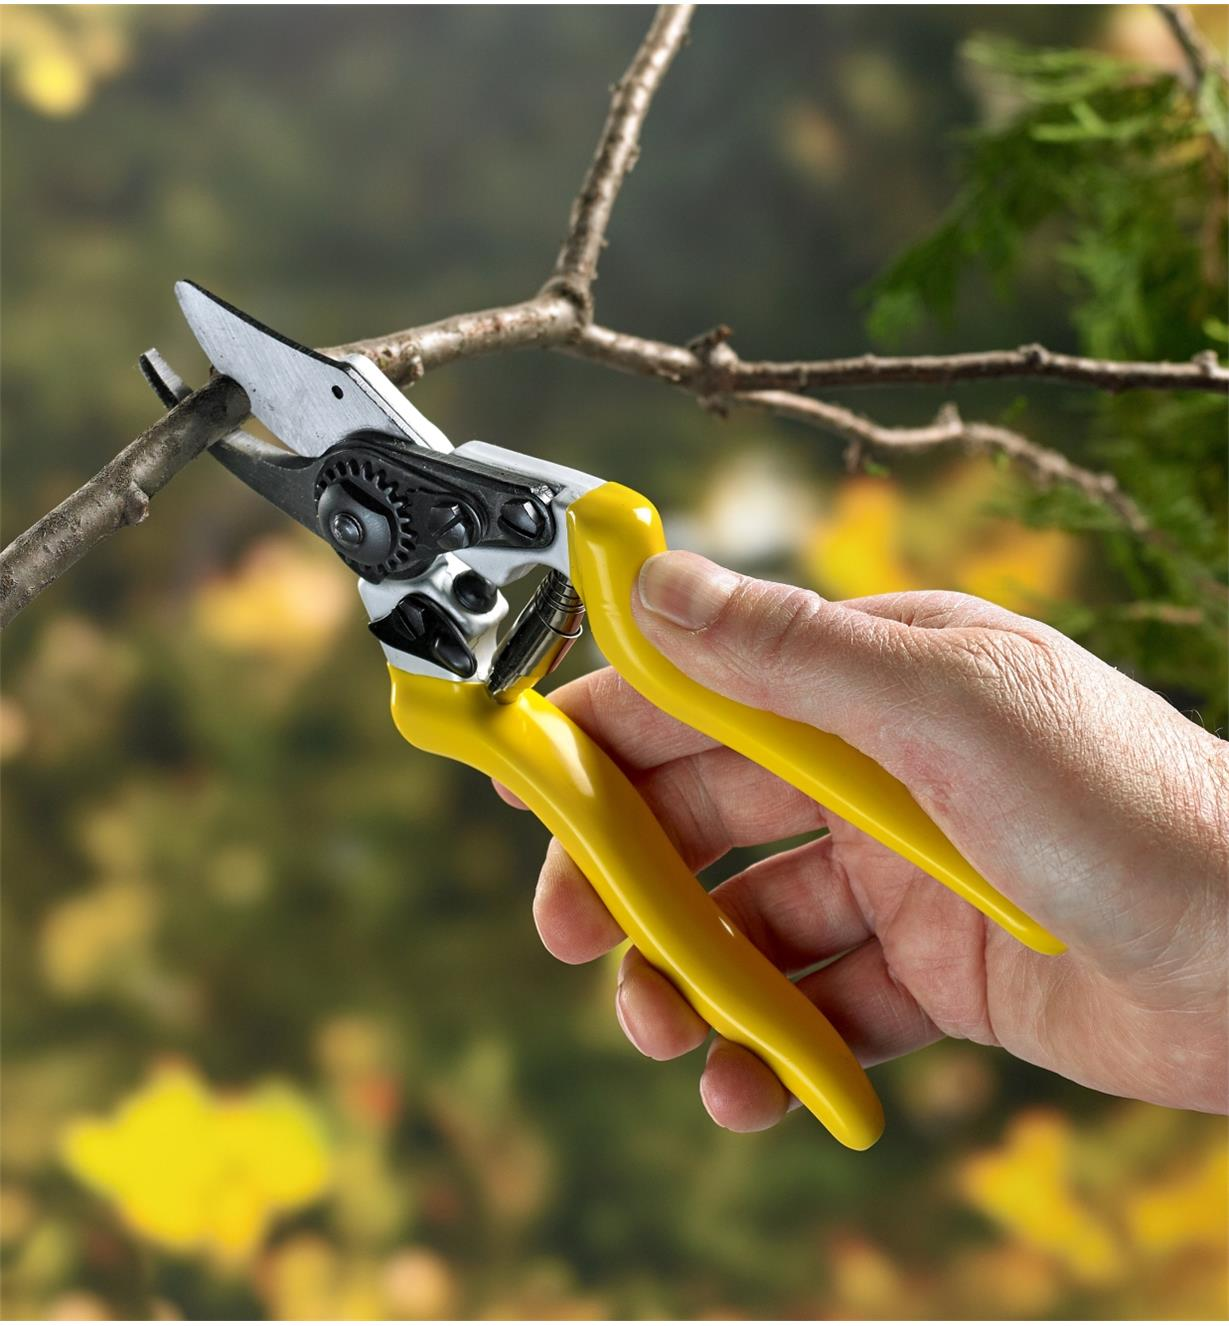 Cutting a twig with the high-quality bypass pruners